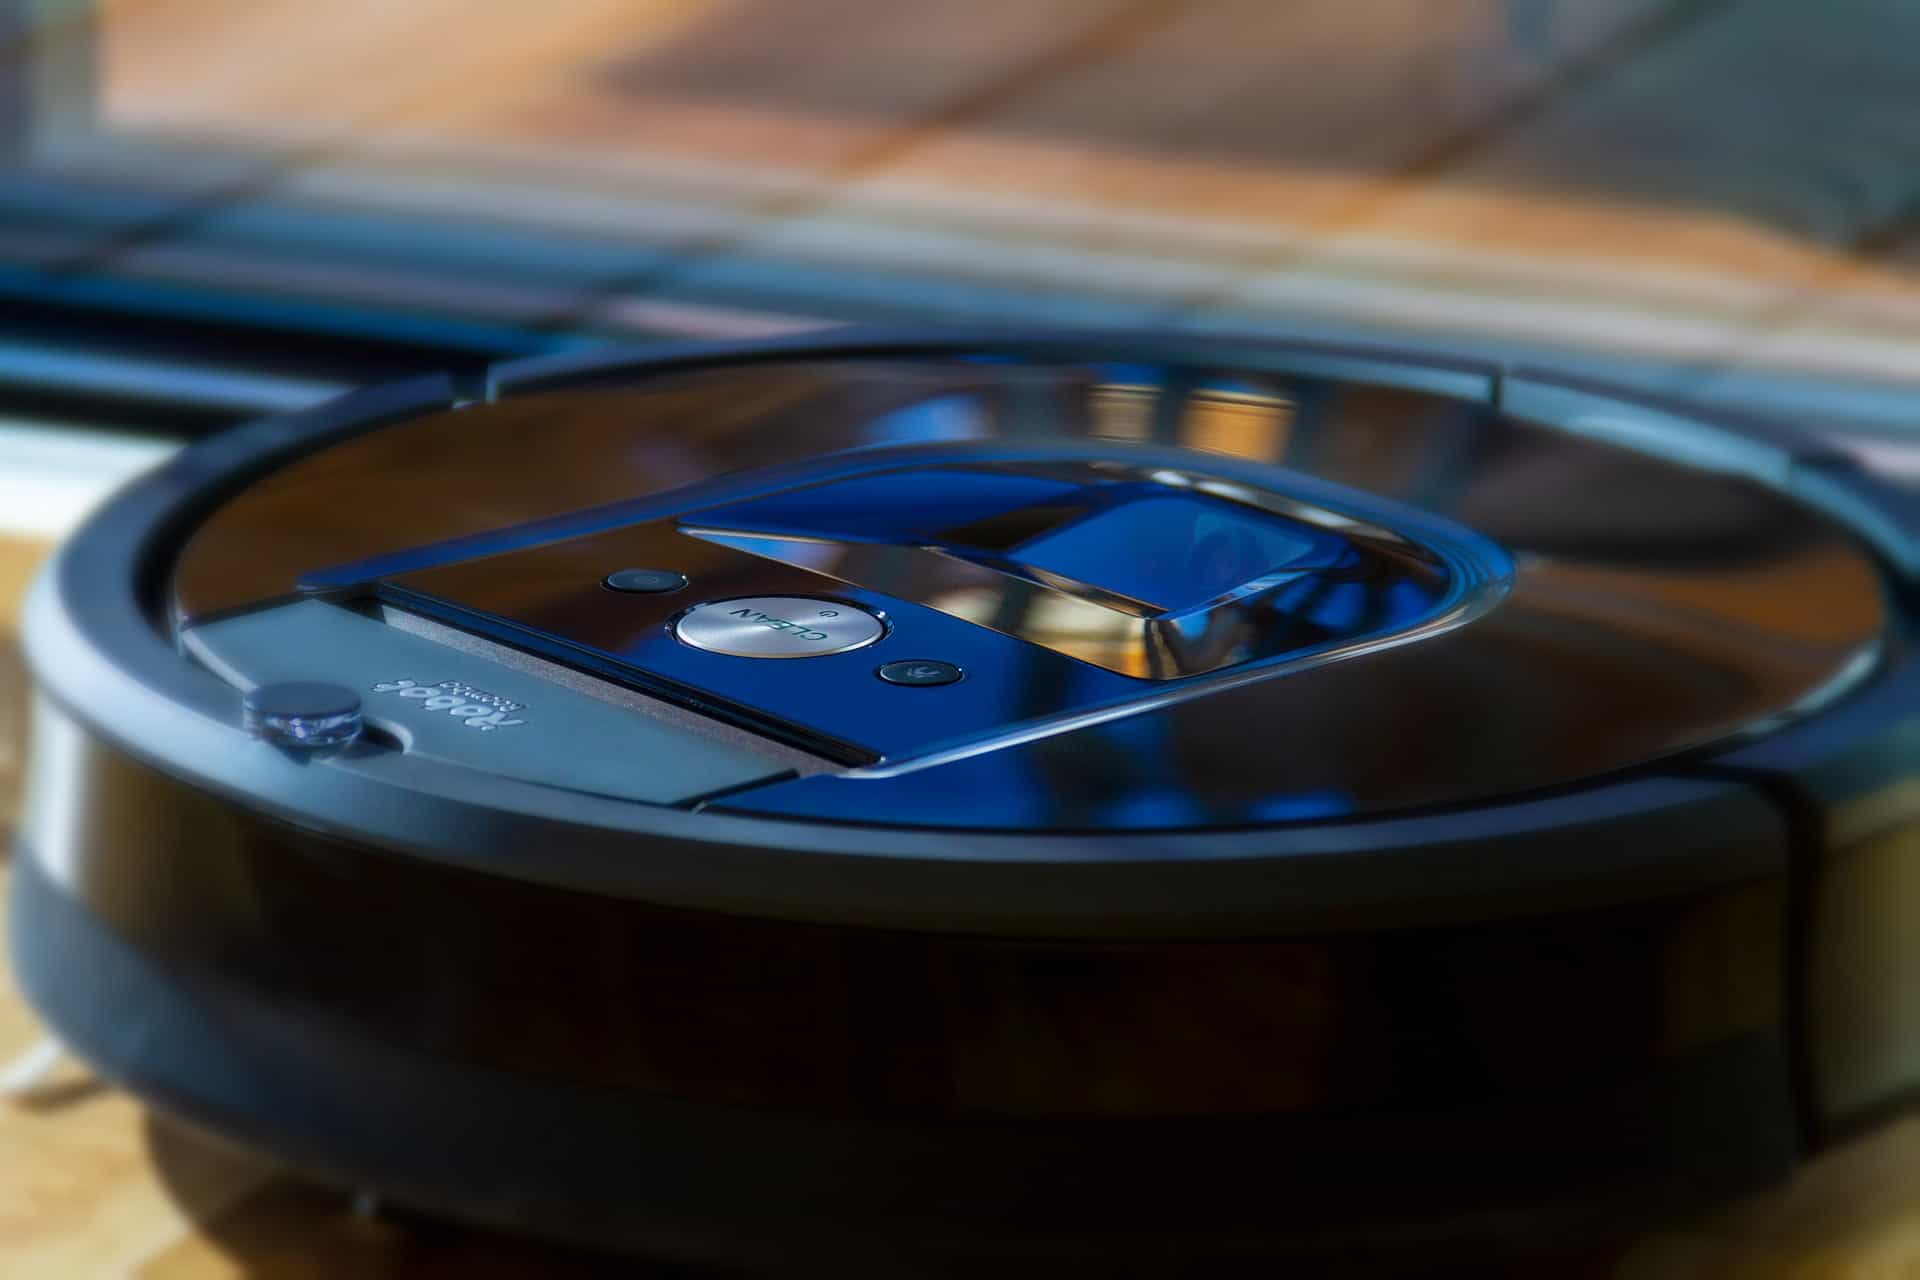 Best Robot Vacuum for 2020